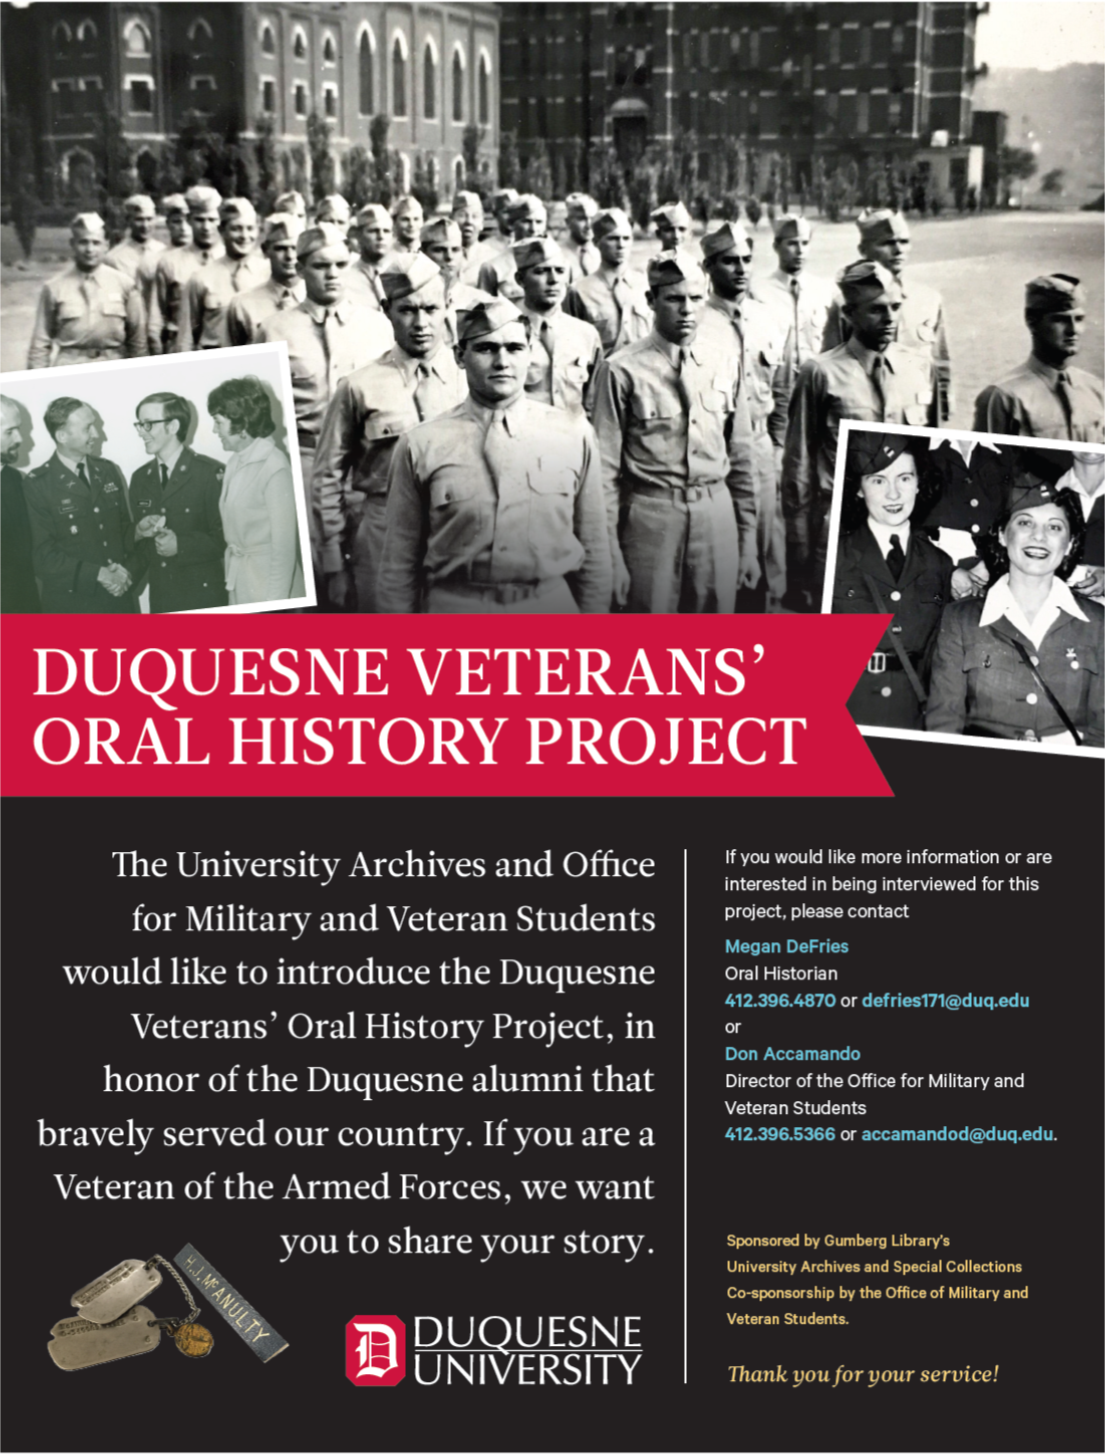 Duquesne Veterans' Oral History Project